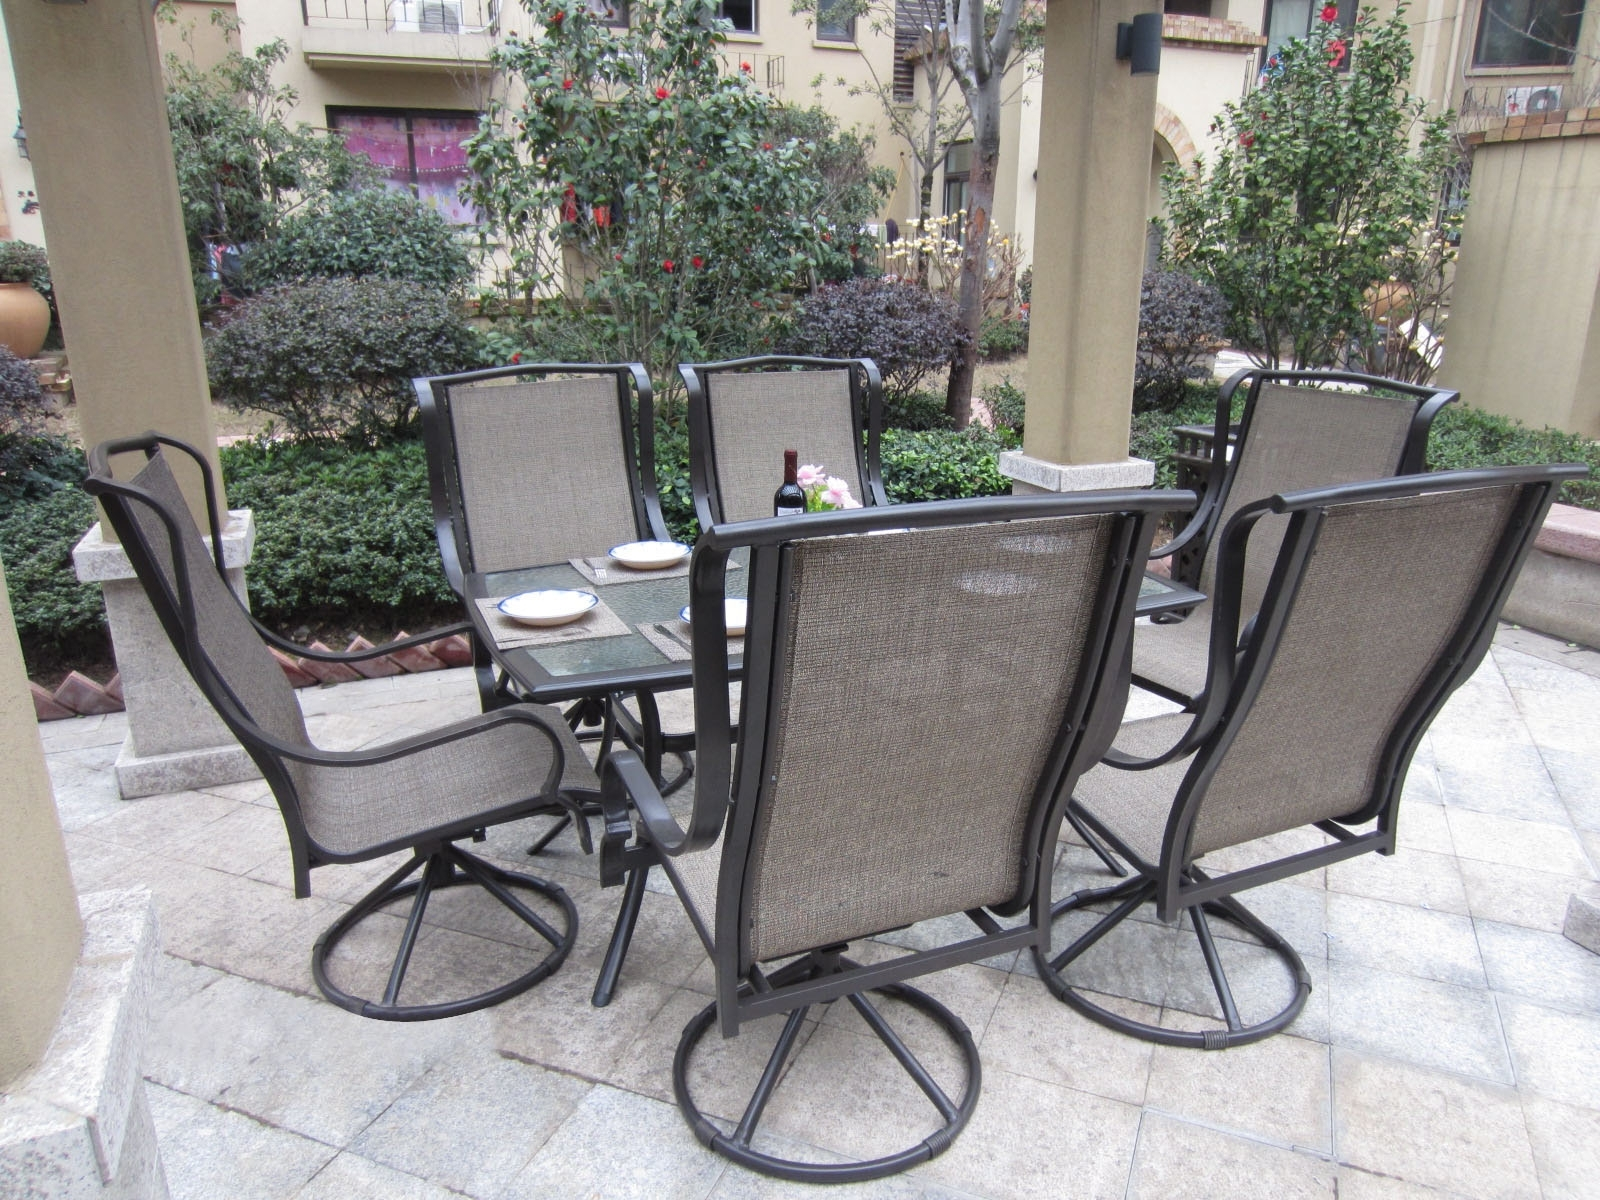 Most Popular Patio Conversation Sets With Rockers In Patio : Small Patio Furniture Beautiful Outdoor Patio Furniture Sets (View 12 of 20)